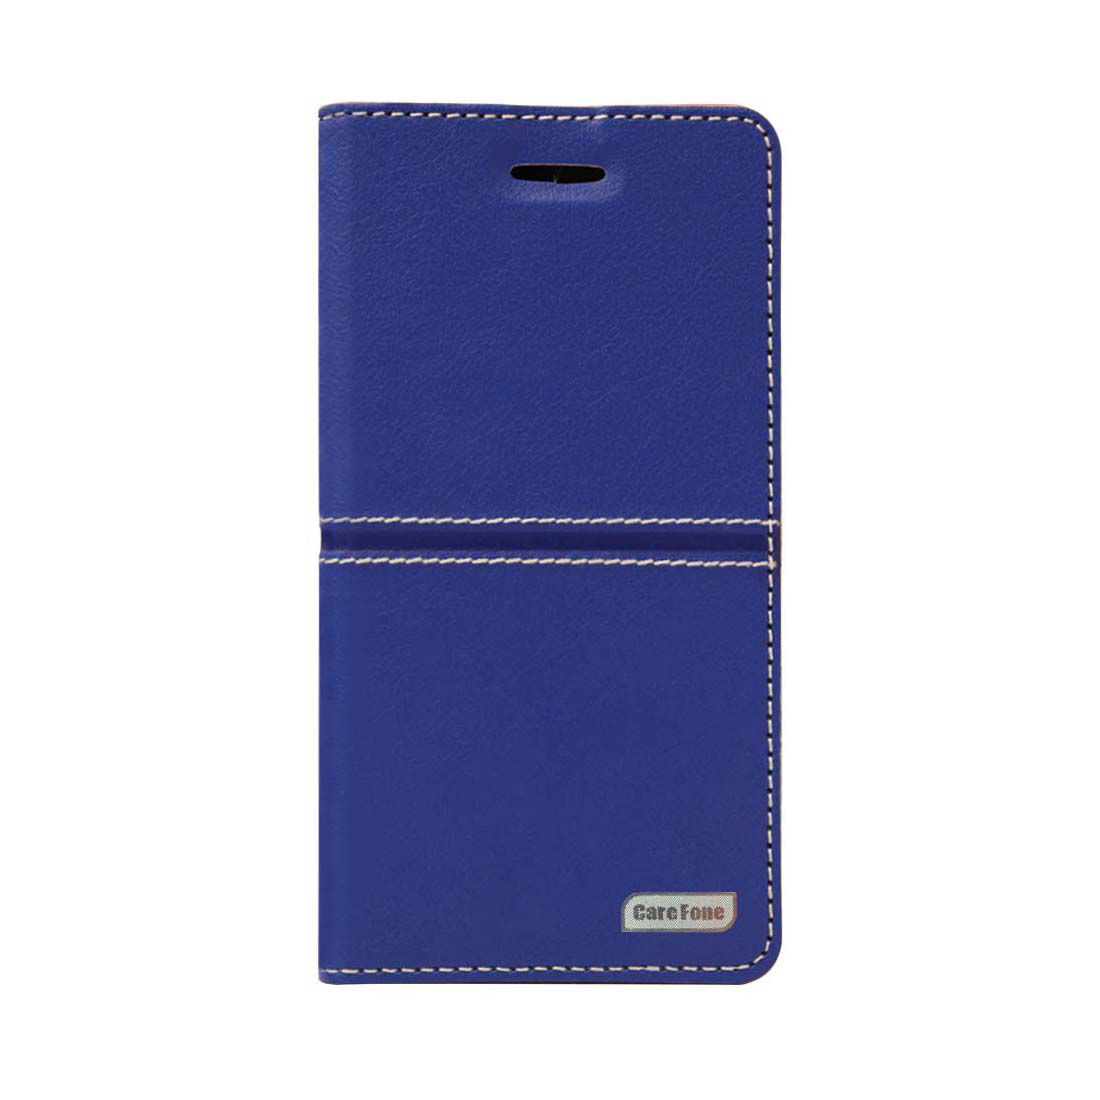 timeless design ee044 60a4e Honor 9 Lite Flip Cover by CareFone - Blue